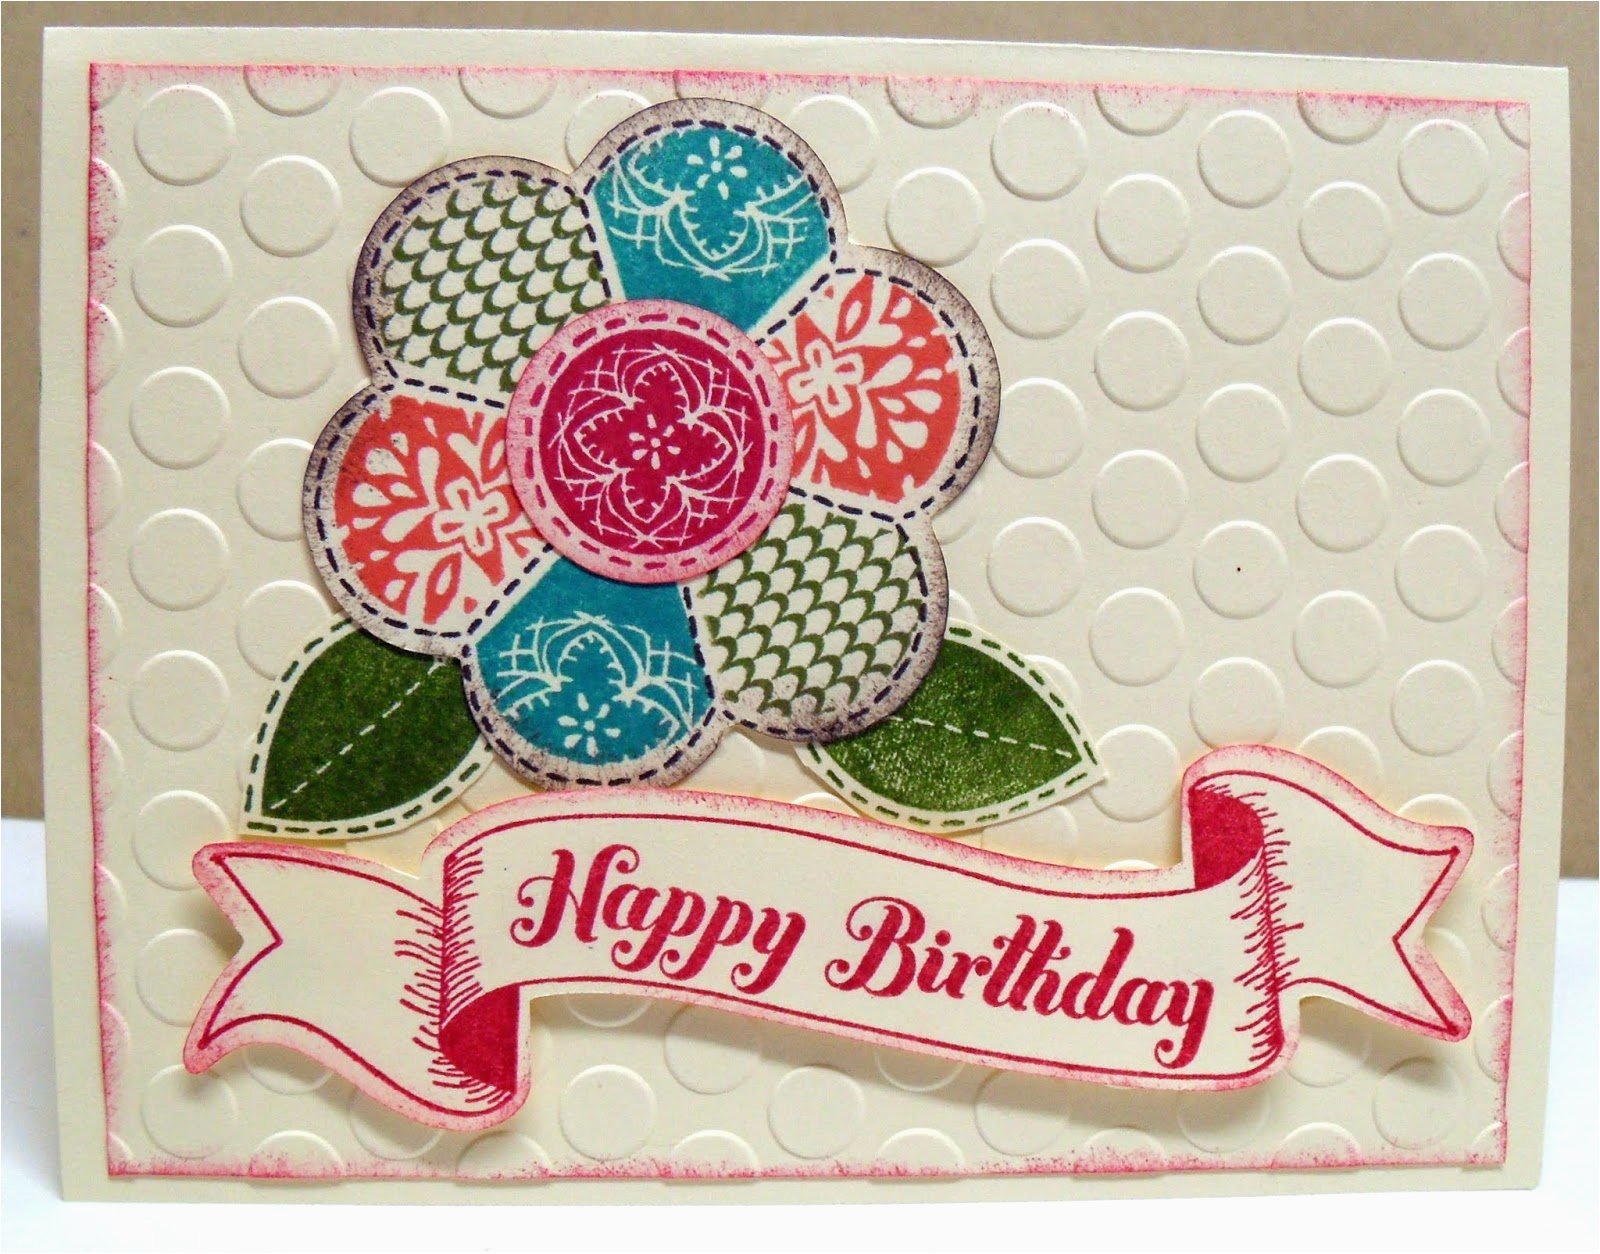 Online Birthday Cards For Mom The Heartfelt And Touching Wishes To Send On Her